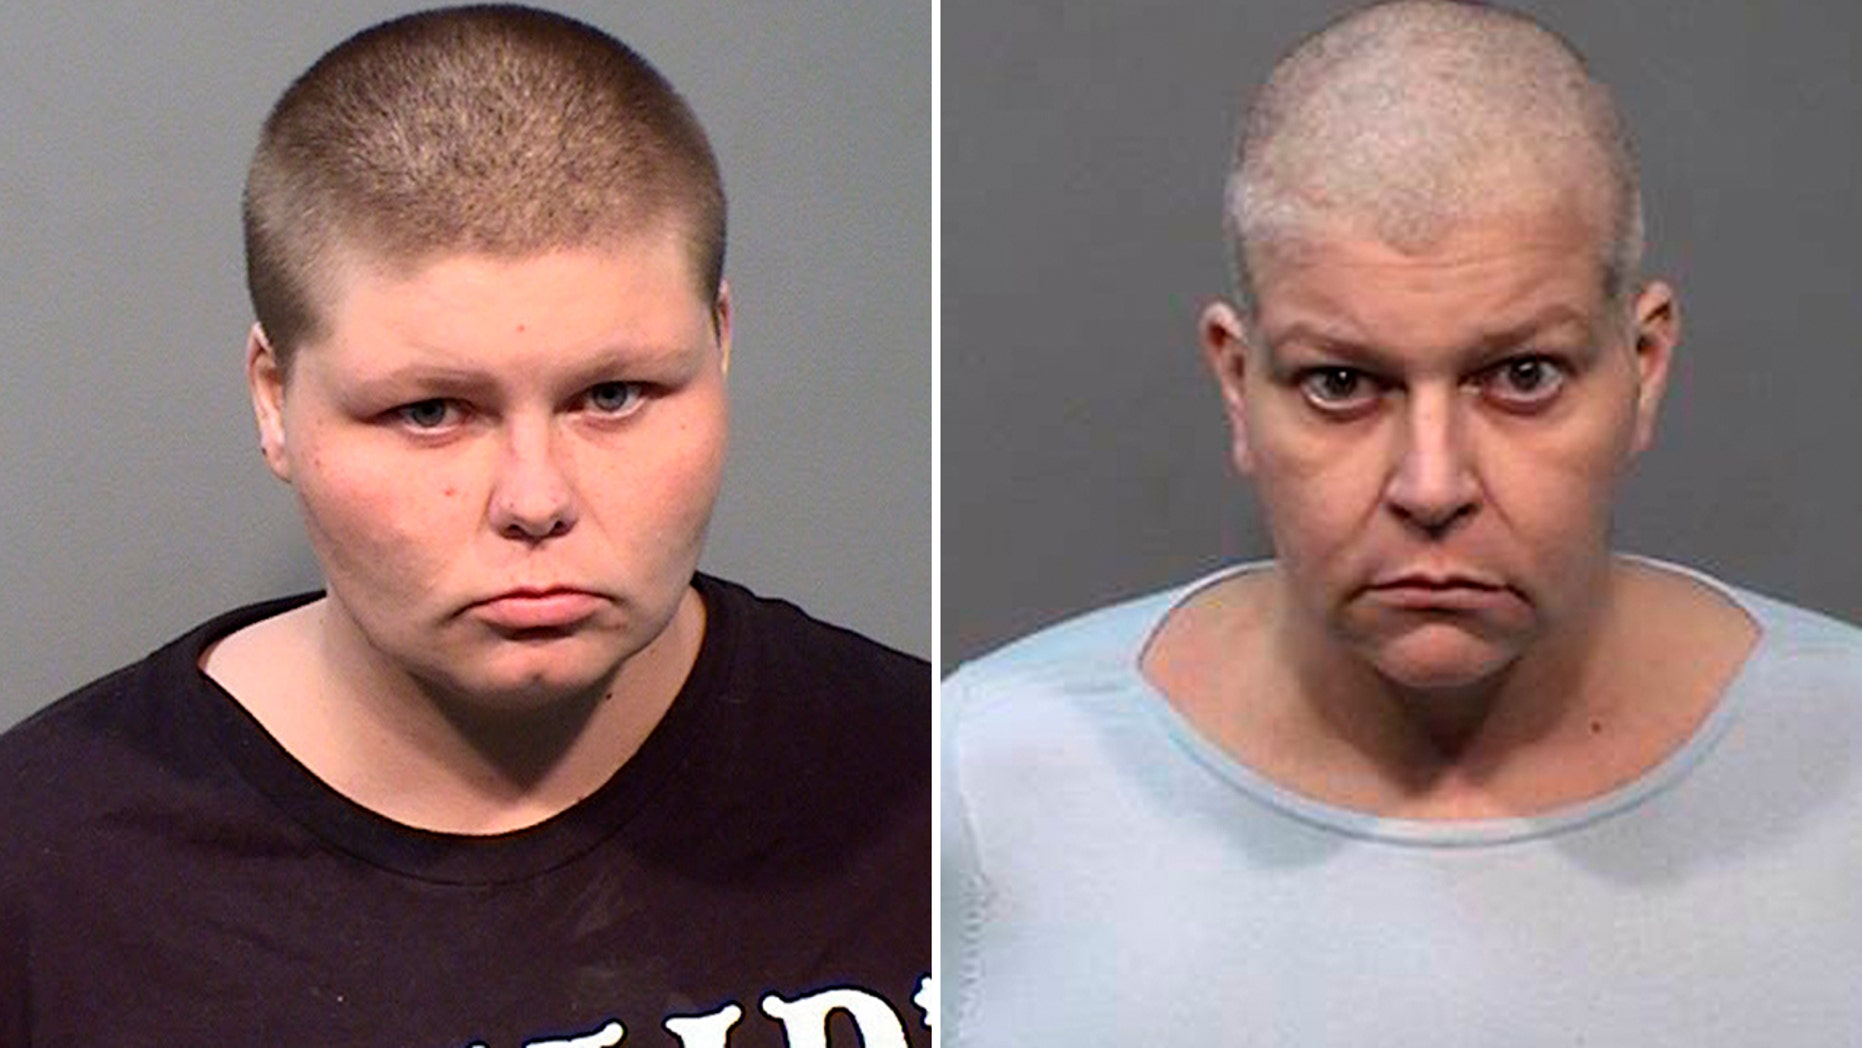 Tara Aven, 46, left and Briar Aven, 24, right, were arrested Tuesday for allegedly killing the family's grandmother's paying his monthly check, police said.